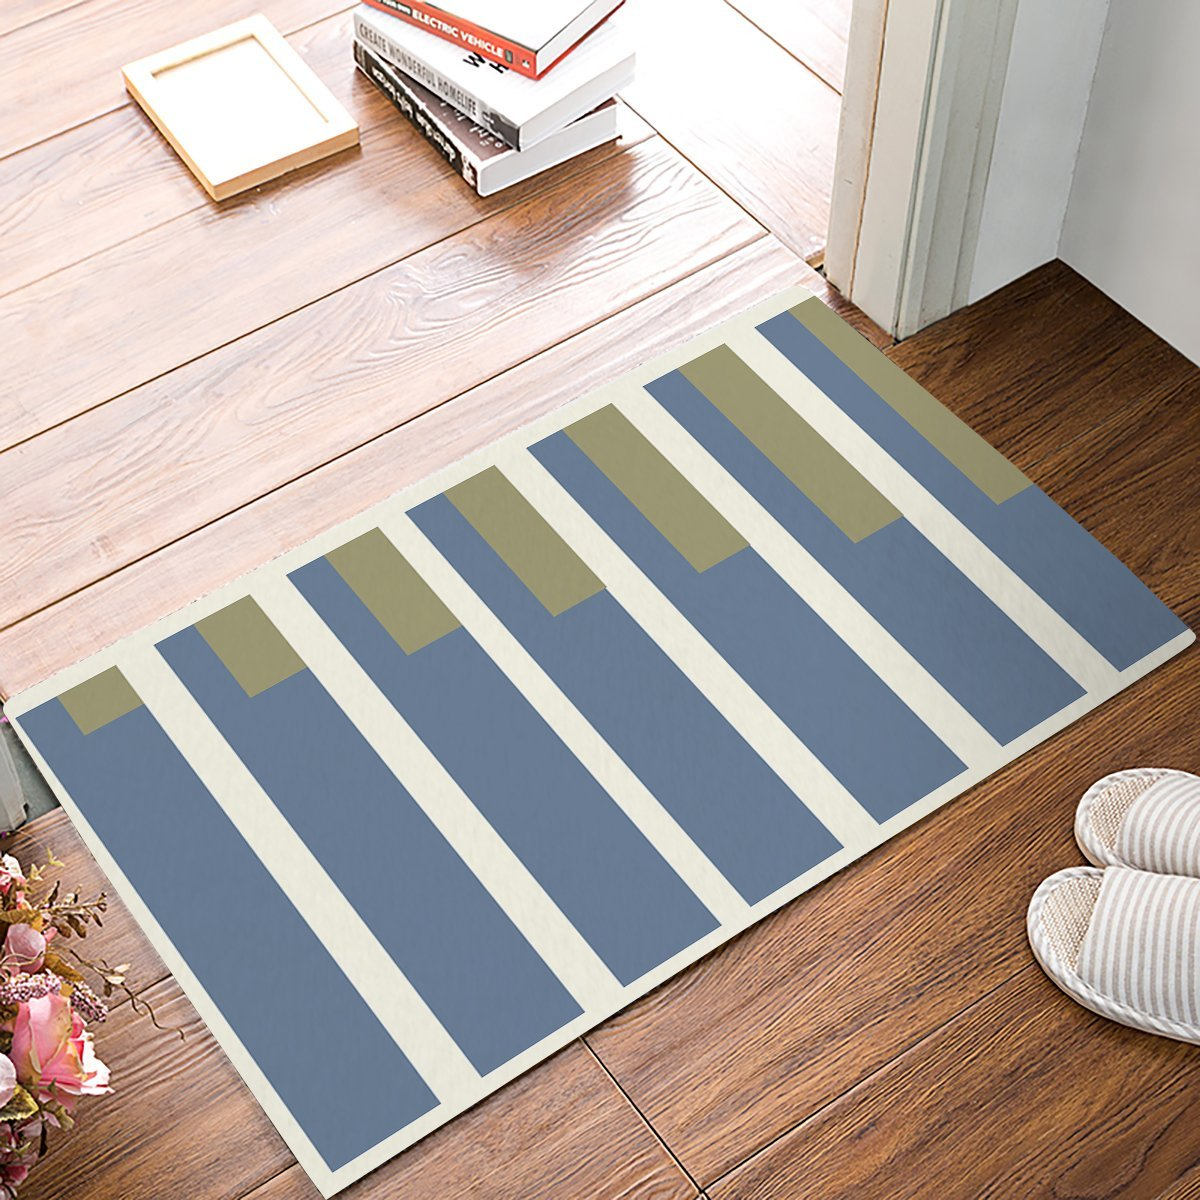 Green, Grey And Light Yellow Color Block Rectangle Door Mats Kitchen Floor Bath Entrance Rug Mat Absorbent Indoor Bathroom